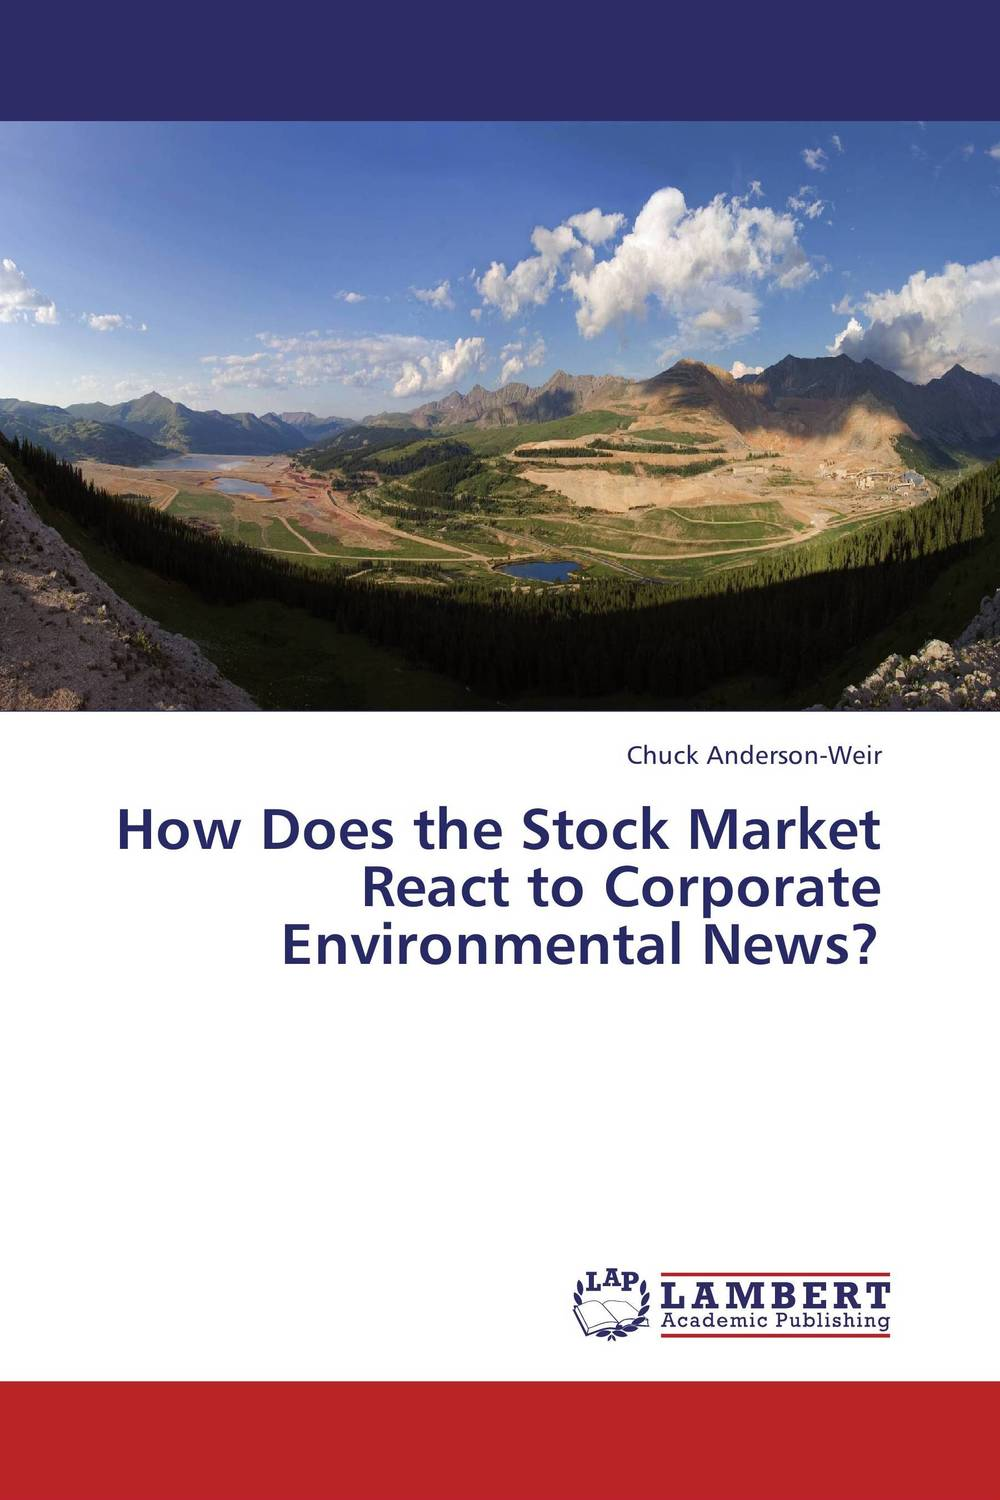 How Does the Stock Market React to Corporate Environmental News? abnormal psychology 4e